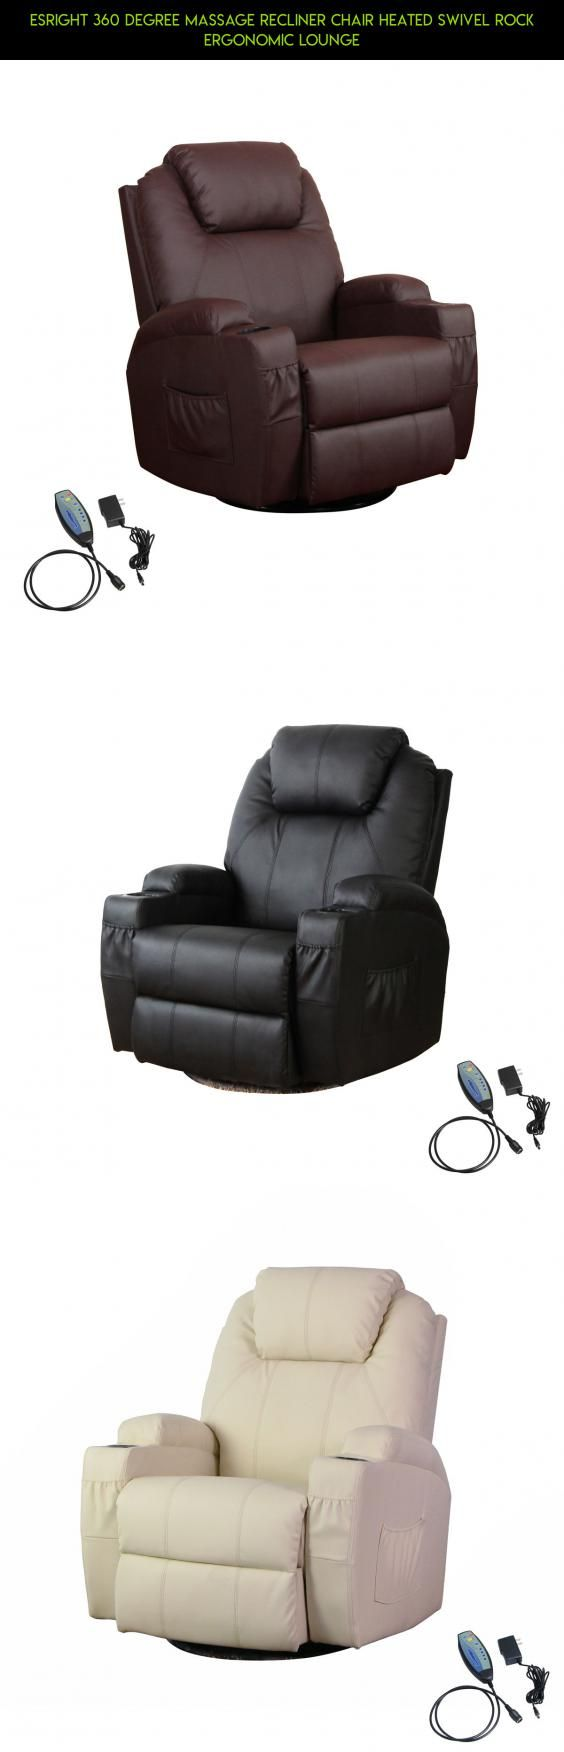 Esright 360 Degree Massage Recliner Chair Heated Swivel Rock Ergonomic Lounge #drone #plans #camera #rock #racing #technology #fpv #tech #kit #gadgets #products #shopping #parts #heating